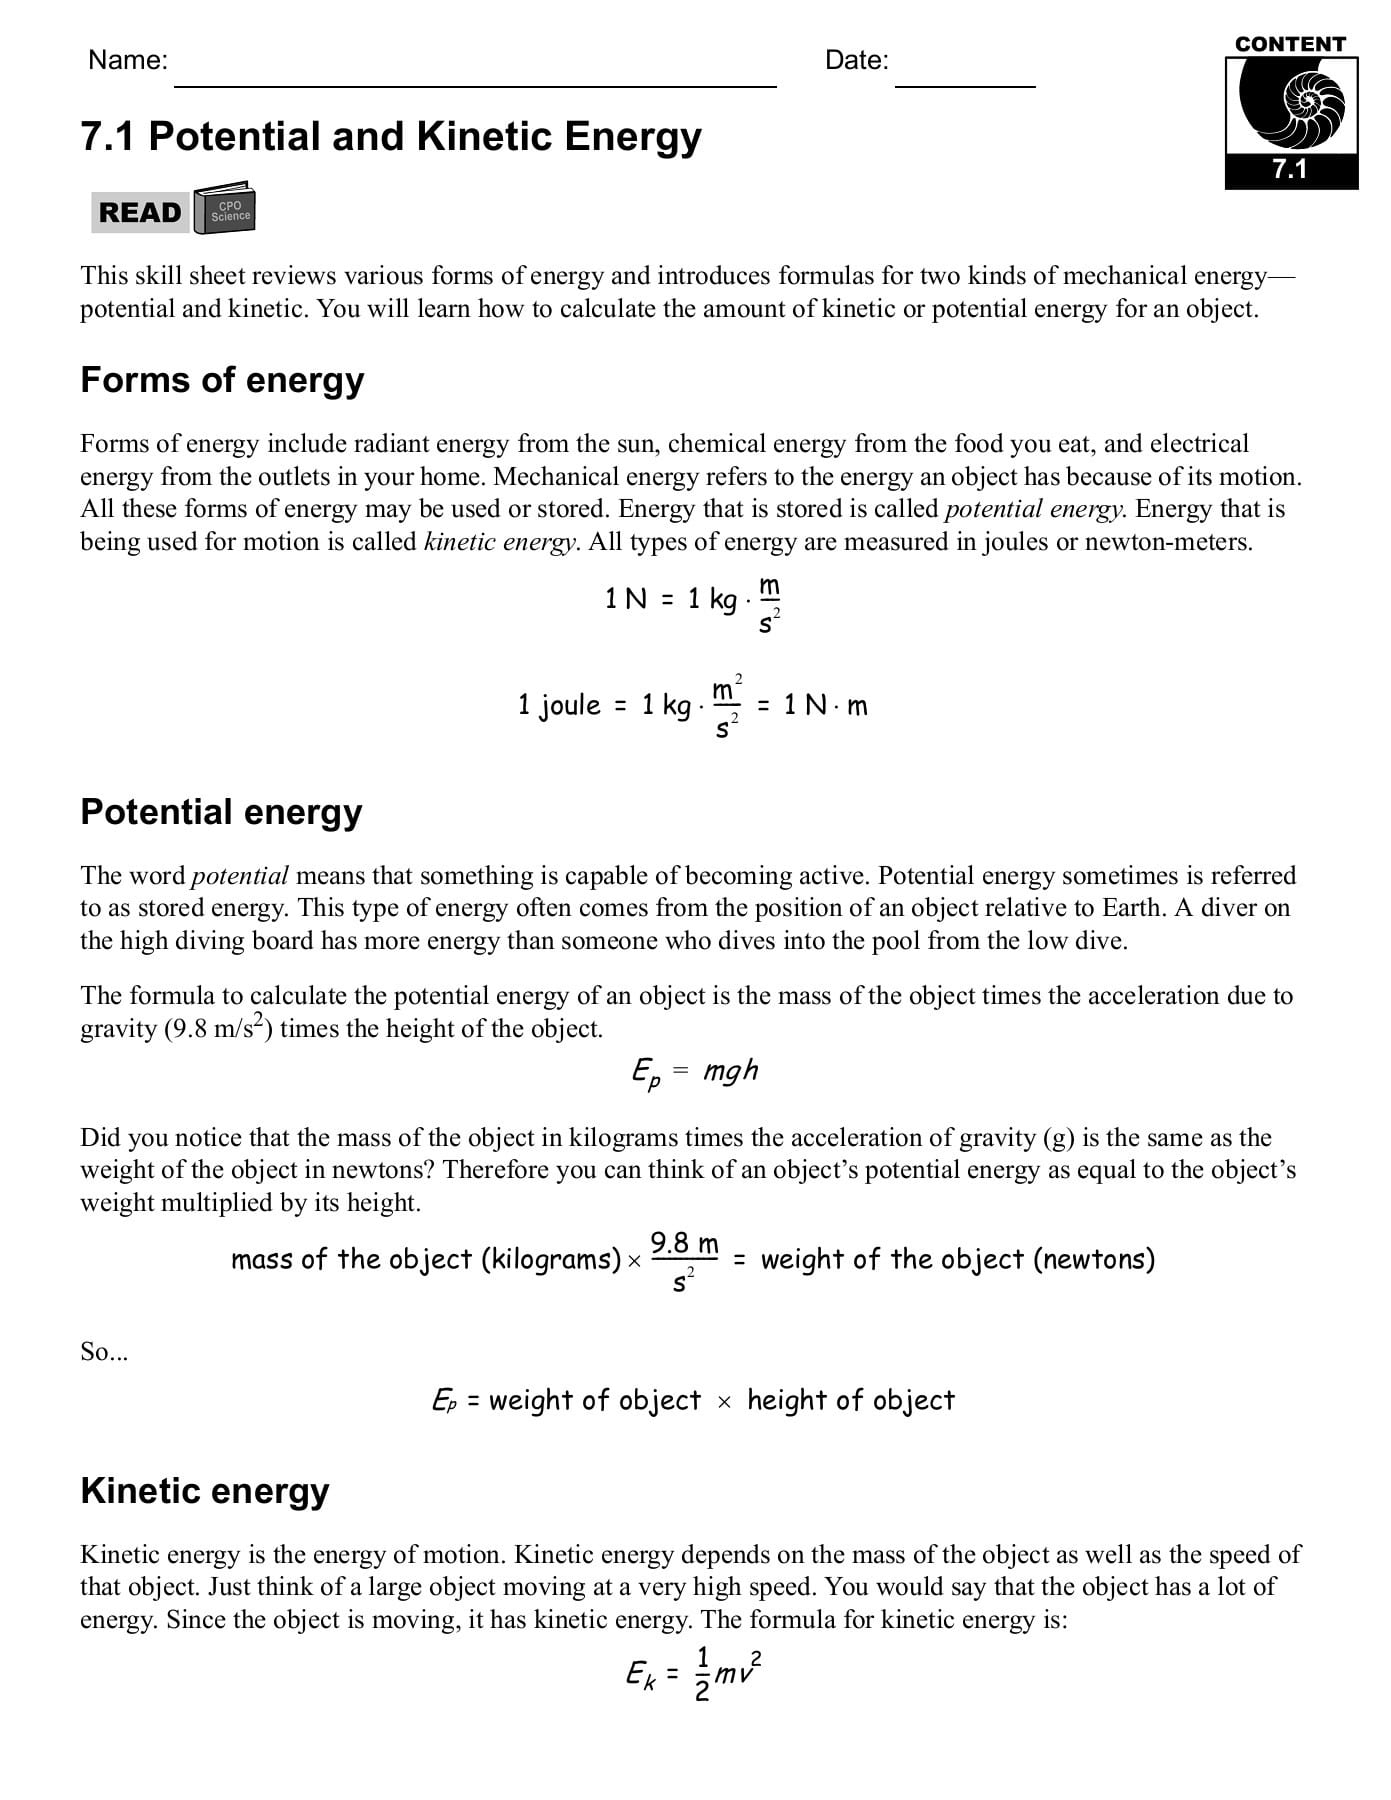 71 Potential And Kinetic Energy Cpo Science Pages 1 29